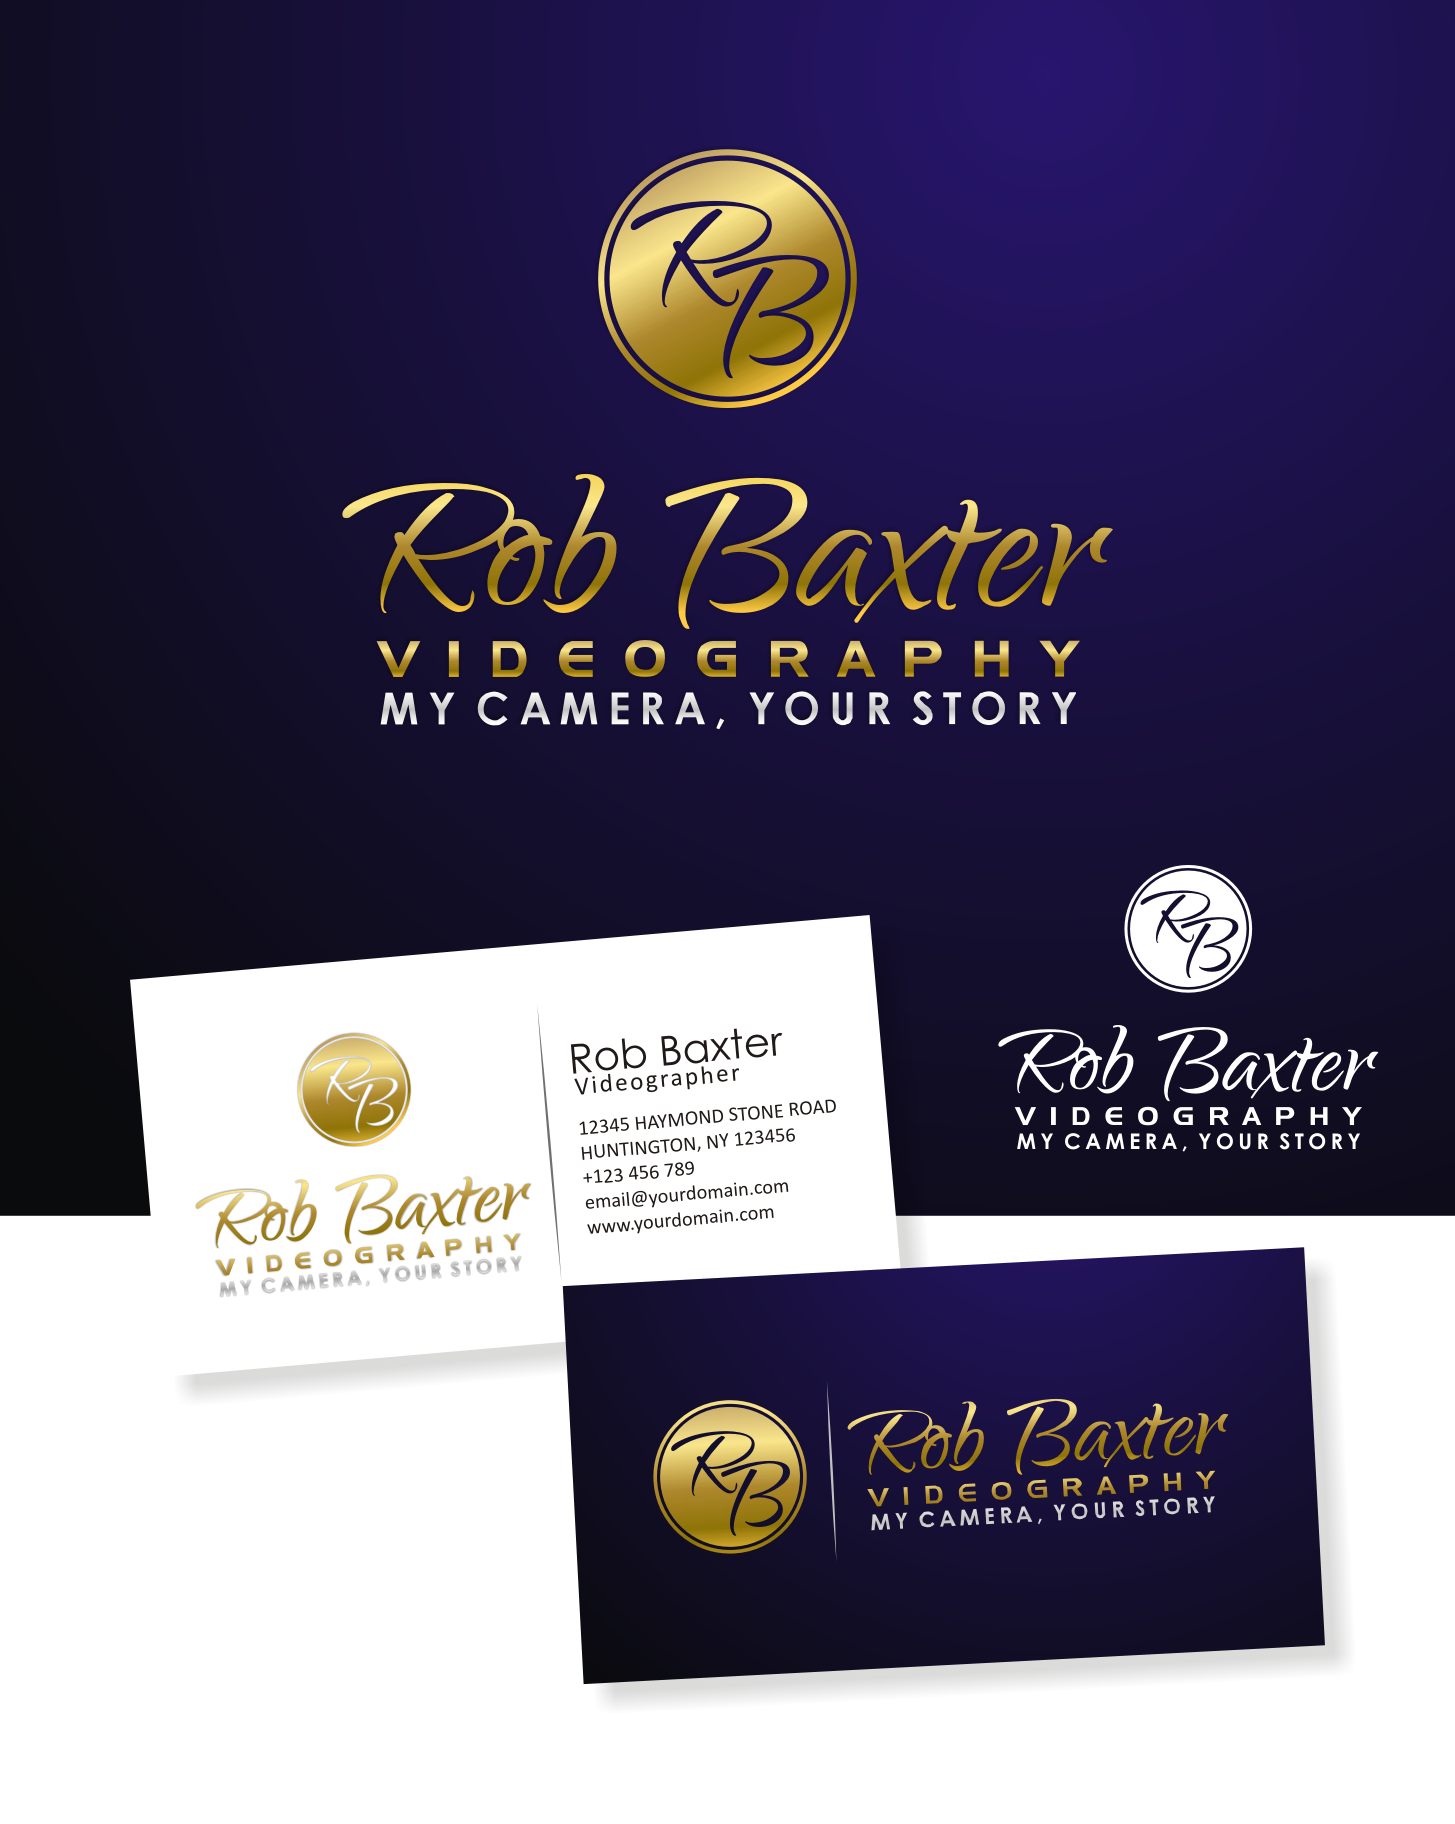 New logo wanted for 'Rob Baxter Videography'